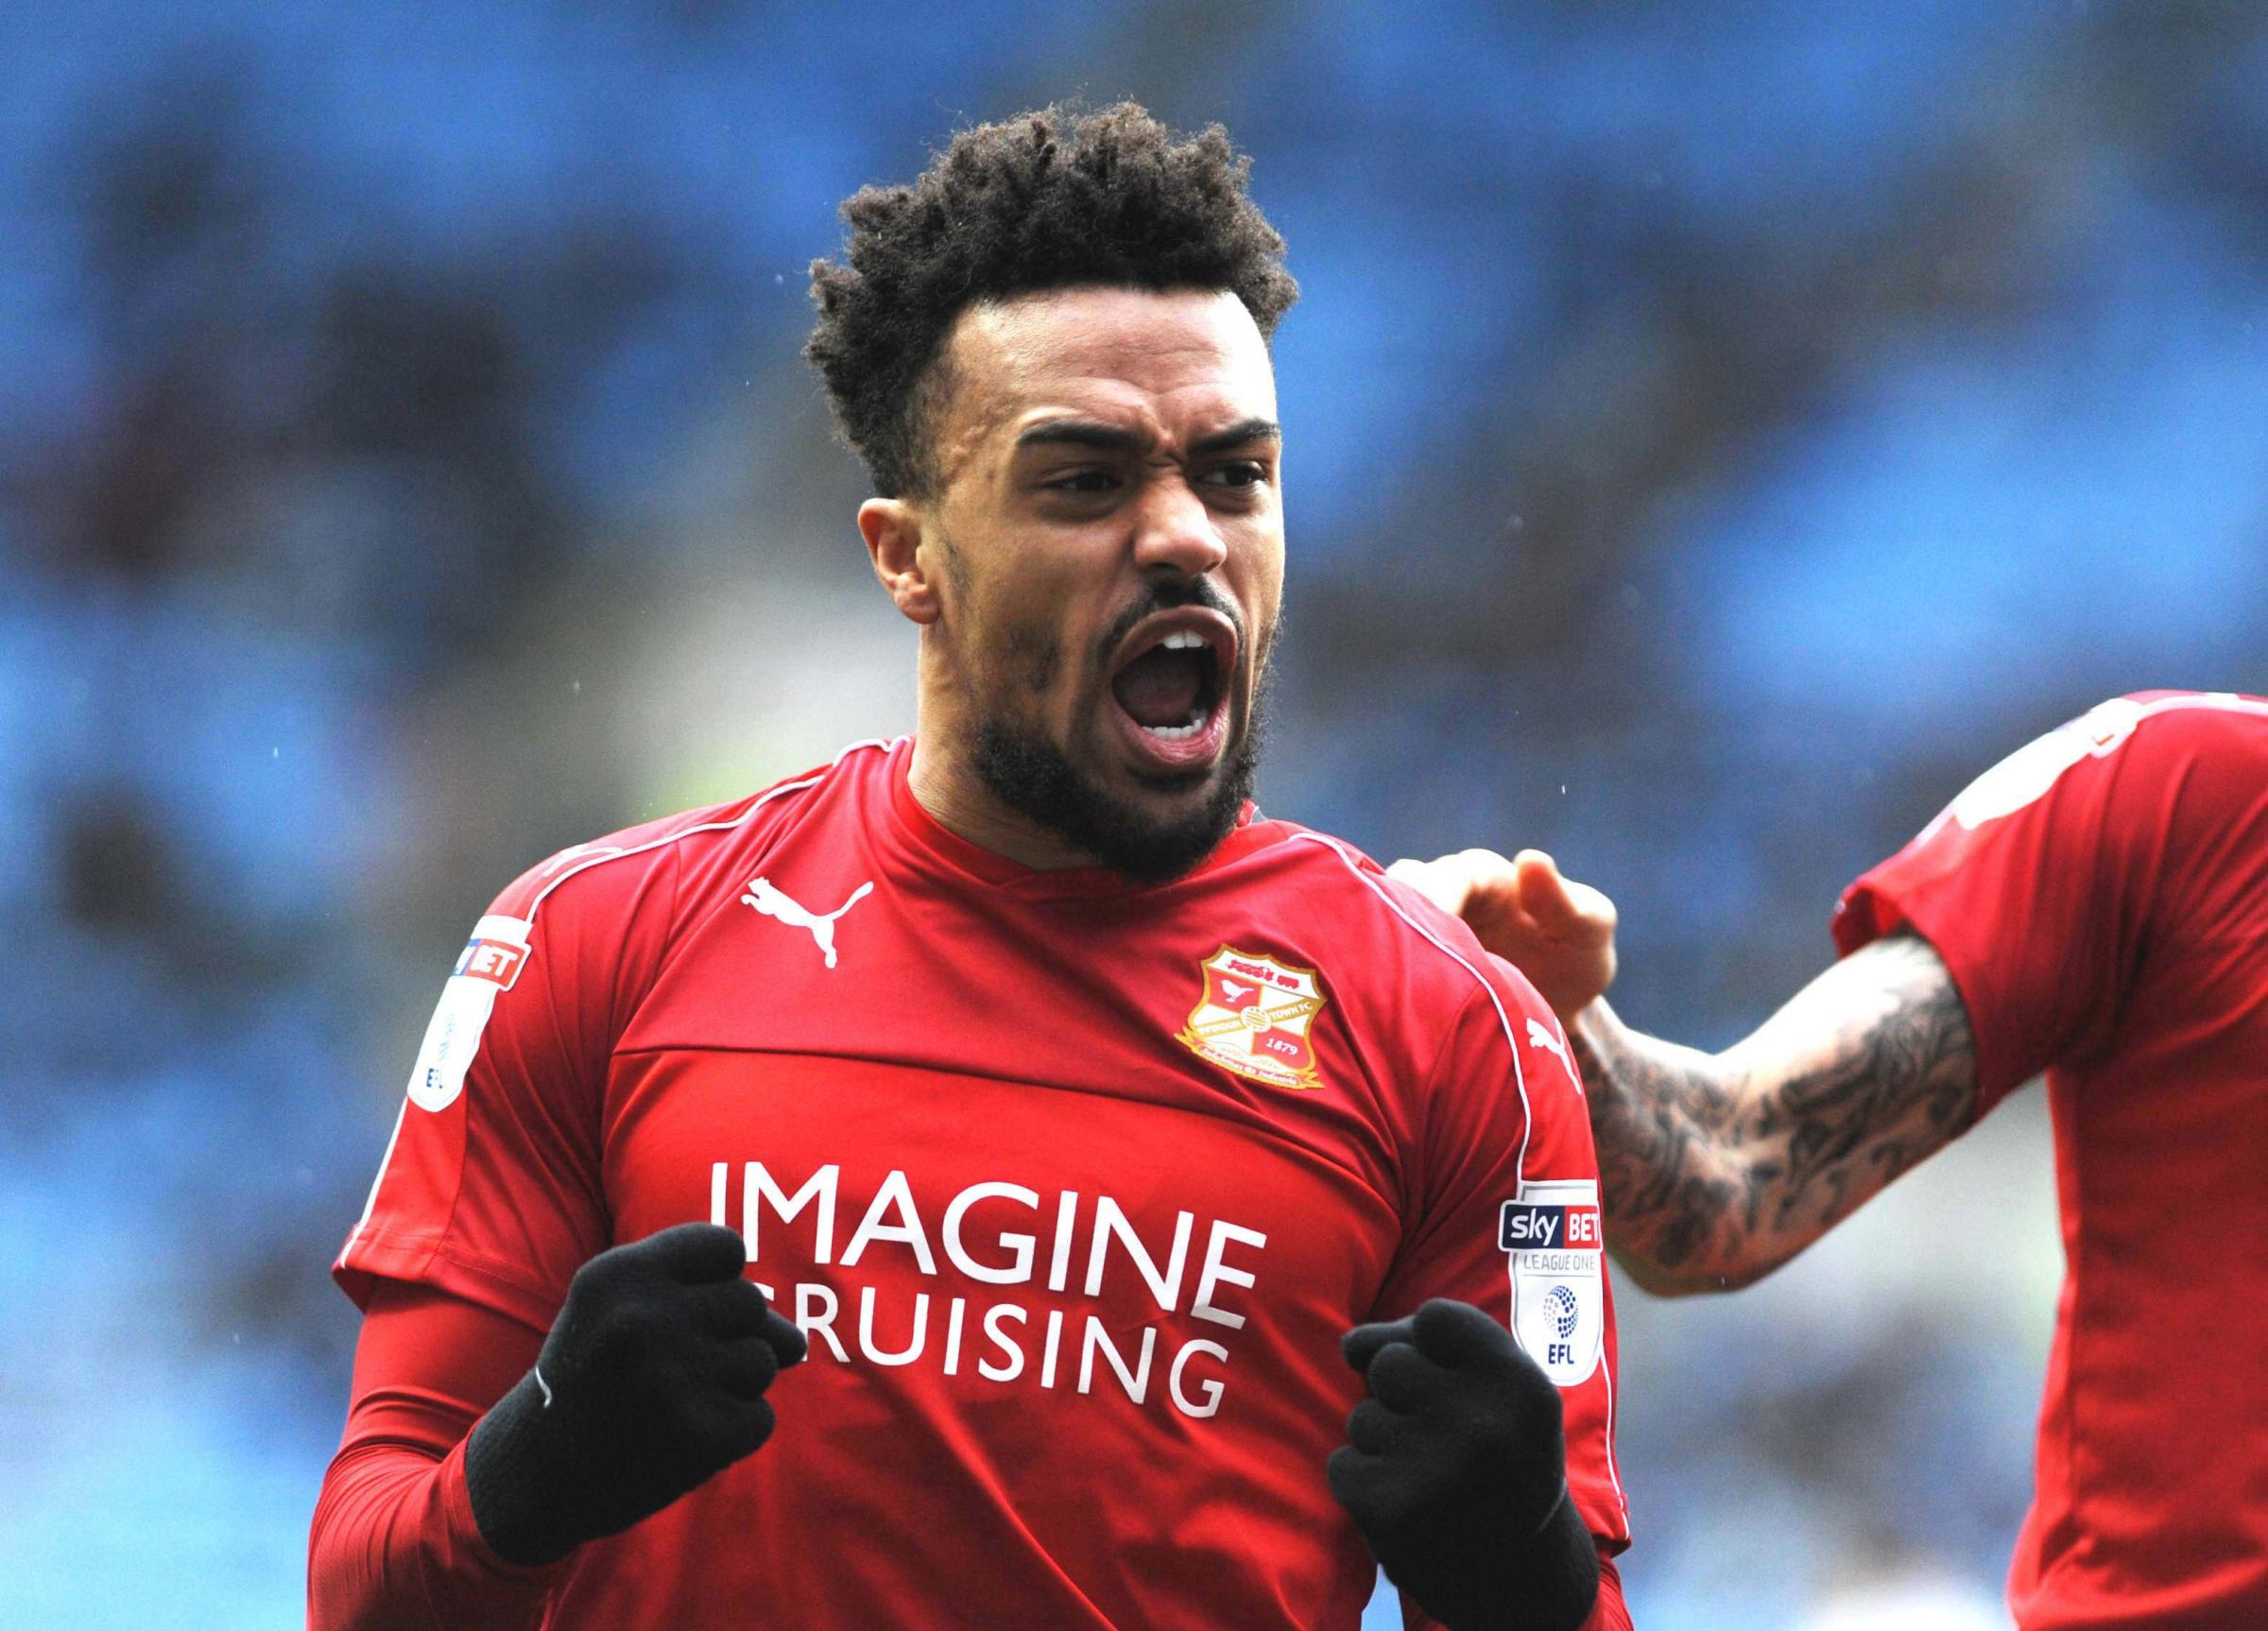 Former Town favourite Ajose snapped up by ex-Swindon boss Flitcroft at Mansfield